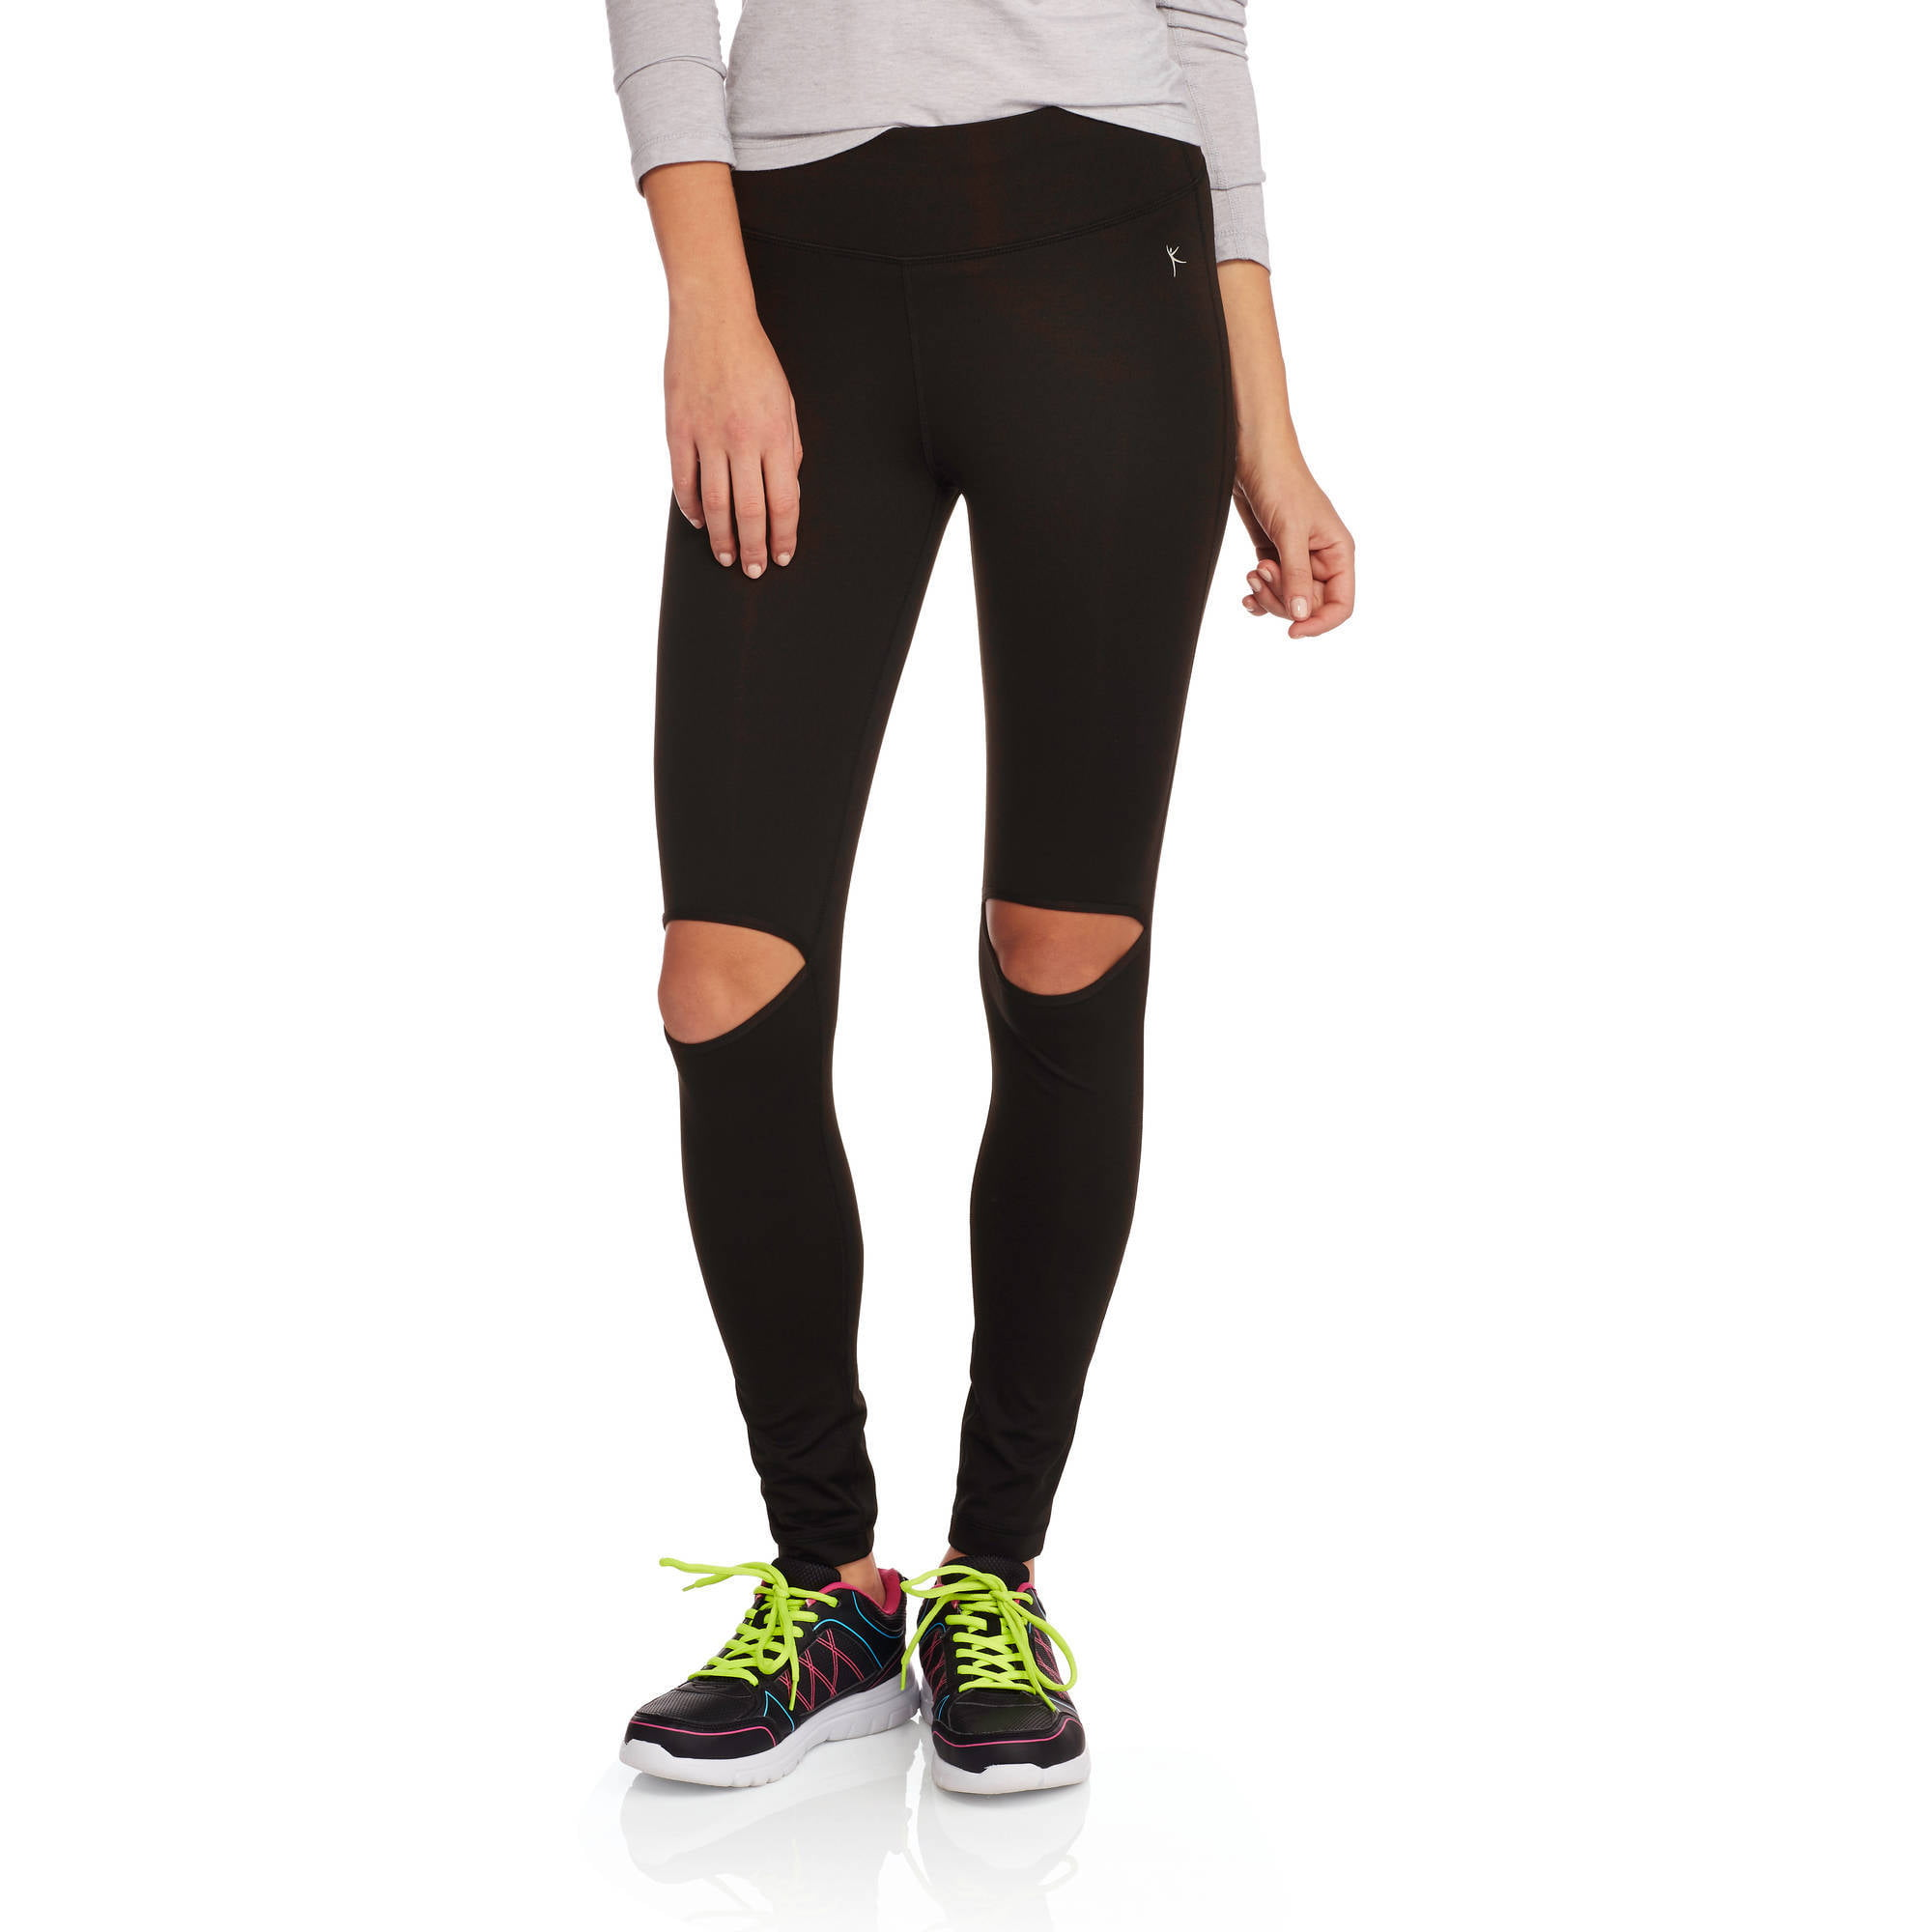 Danskin Now Juniors' High Waisted Leggings with Cut Out Knee ...